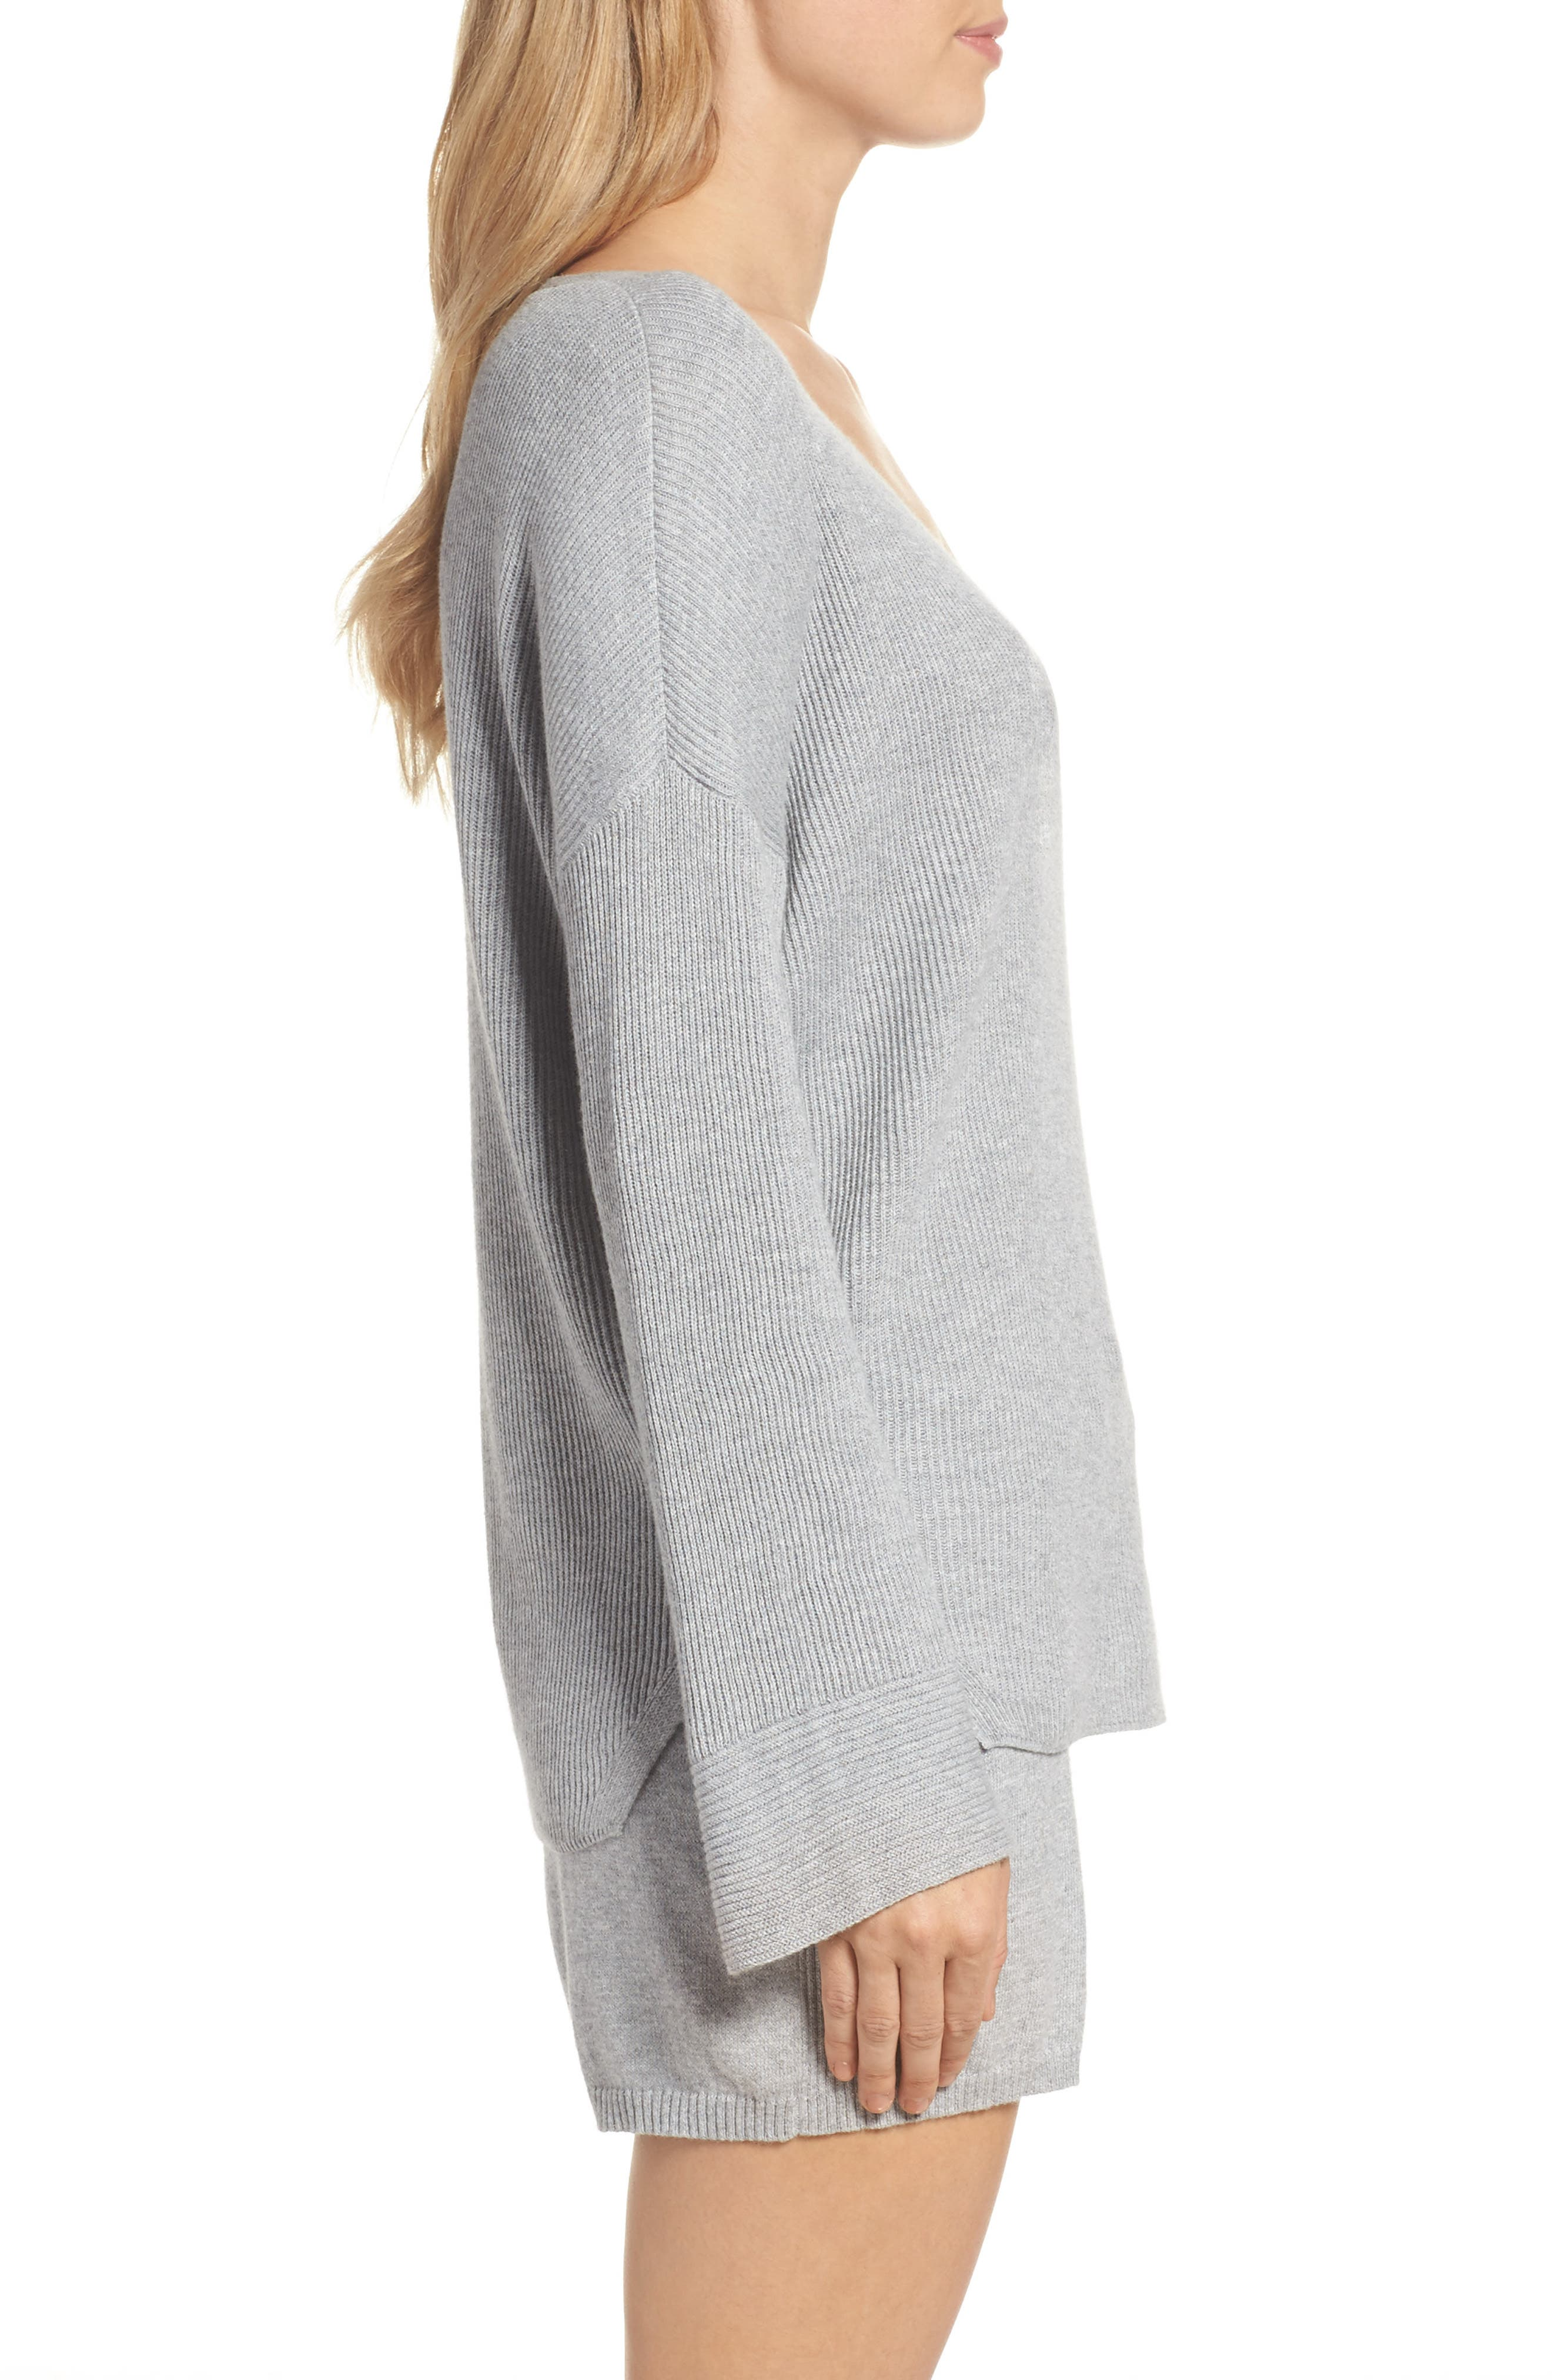 Veronica Lounge Pullover,                             Alternate thumbnail 5, color,